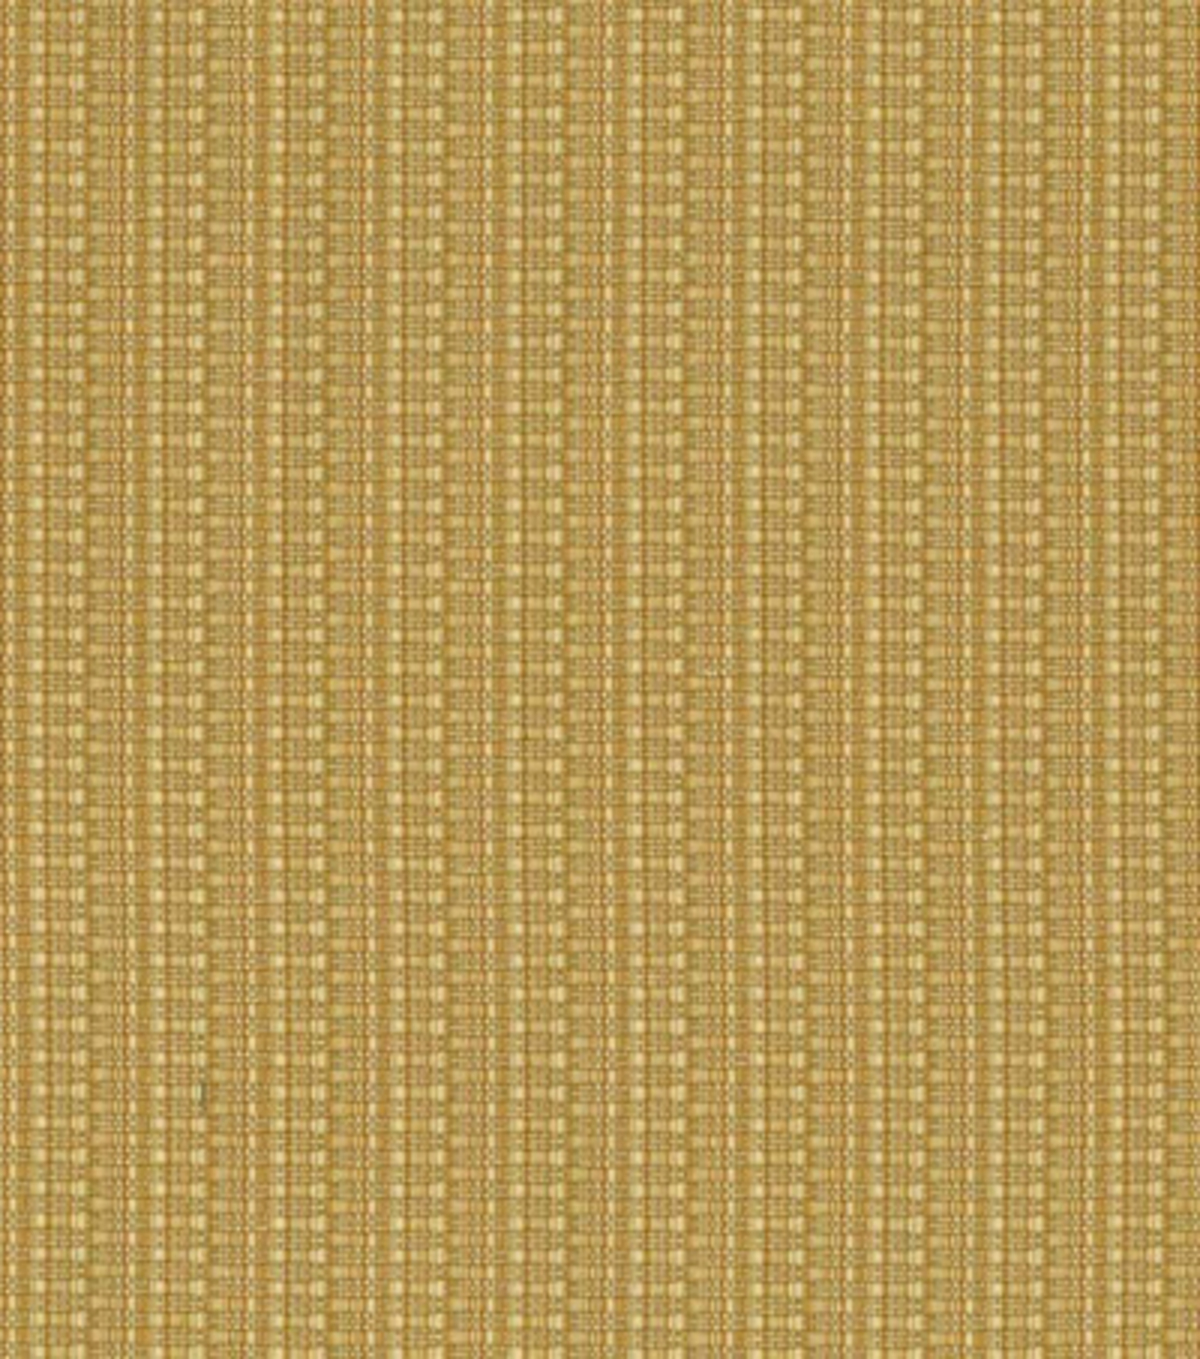 Dena Home Multi-Purpose Decor Fabric 55\u0022-Dream Weaver/Camel